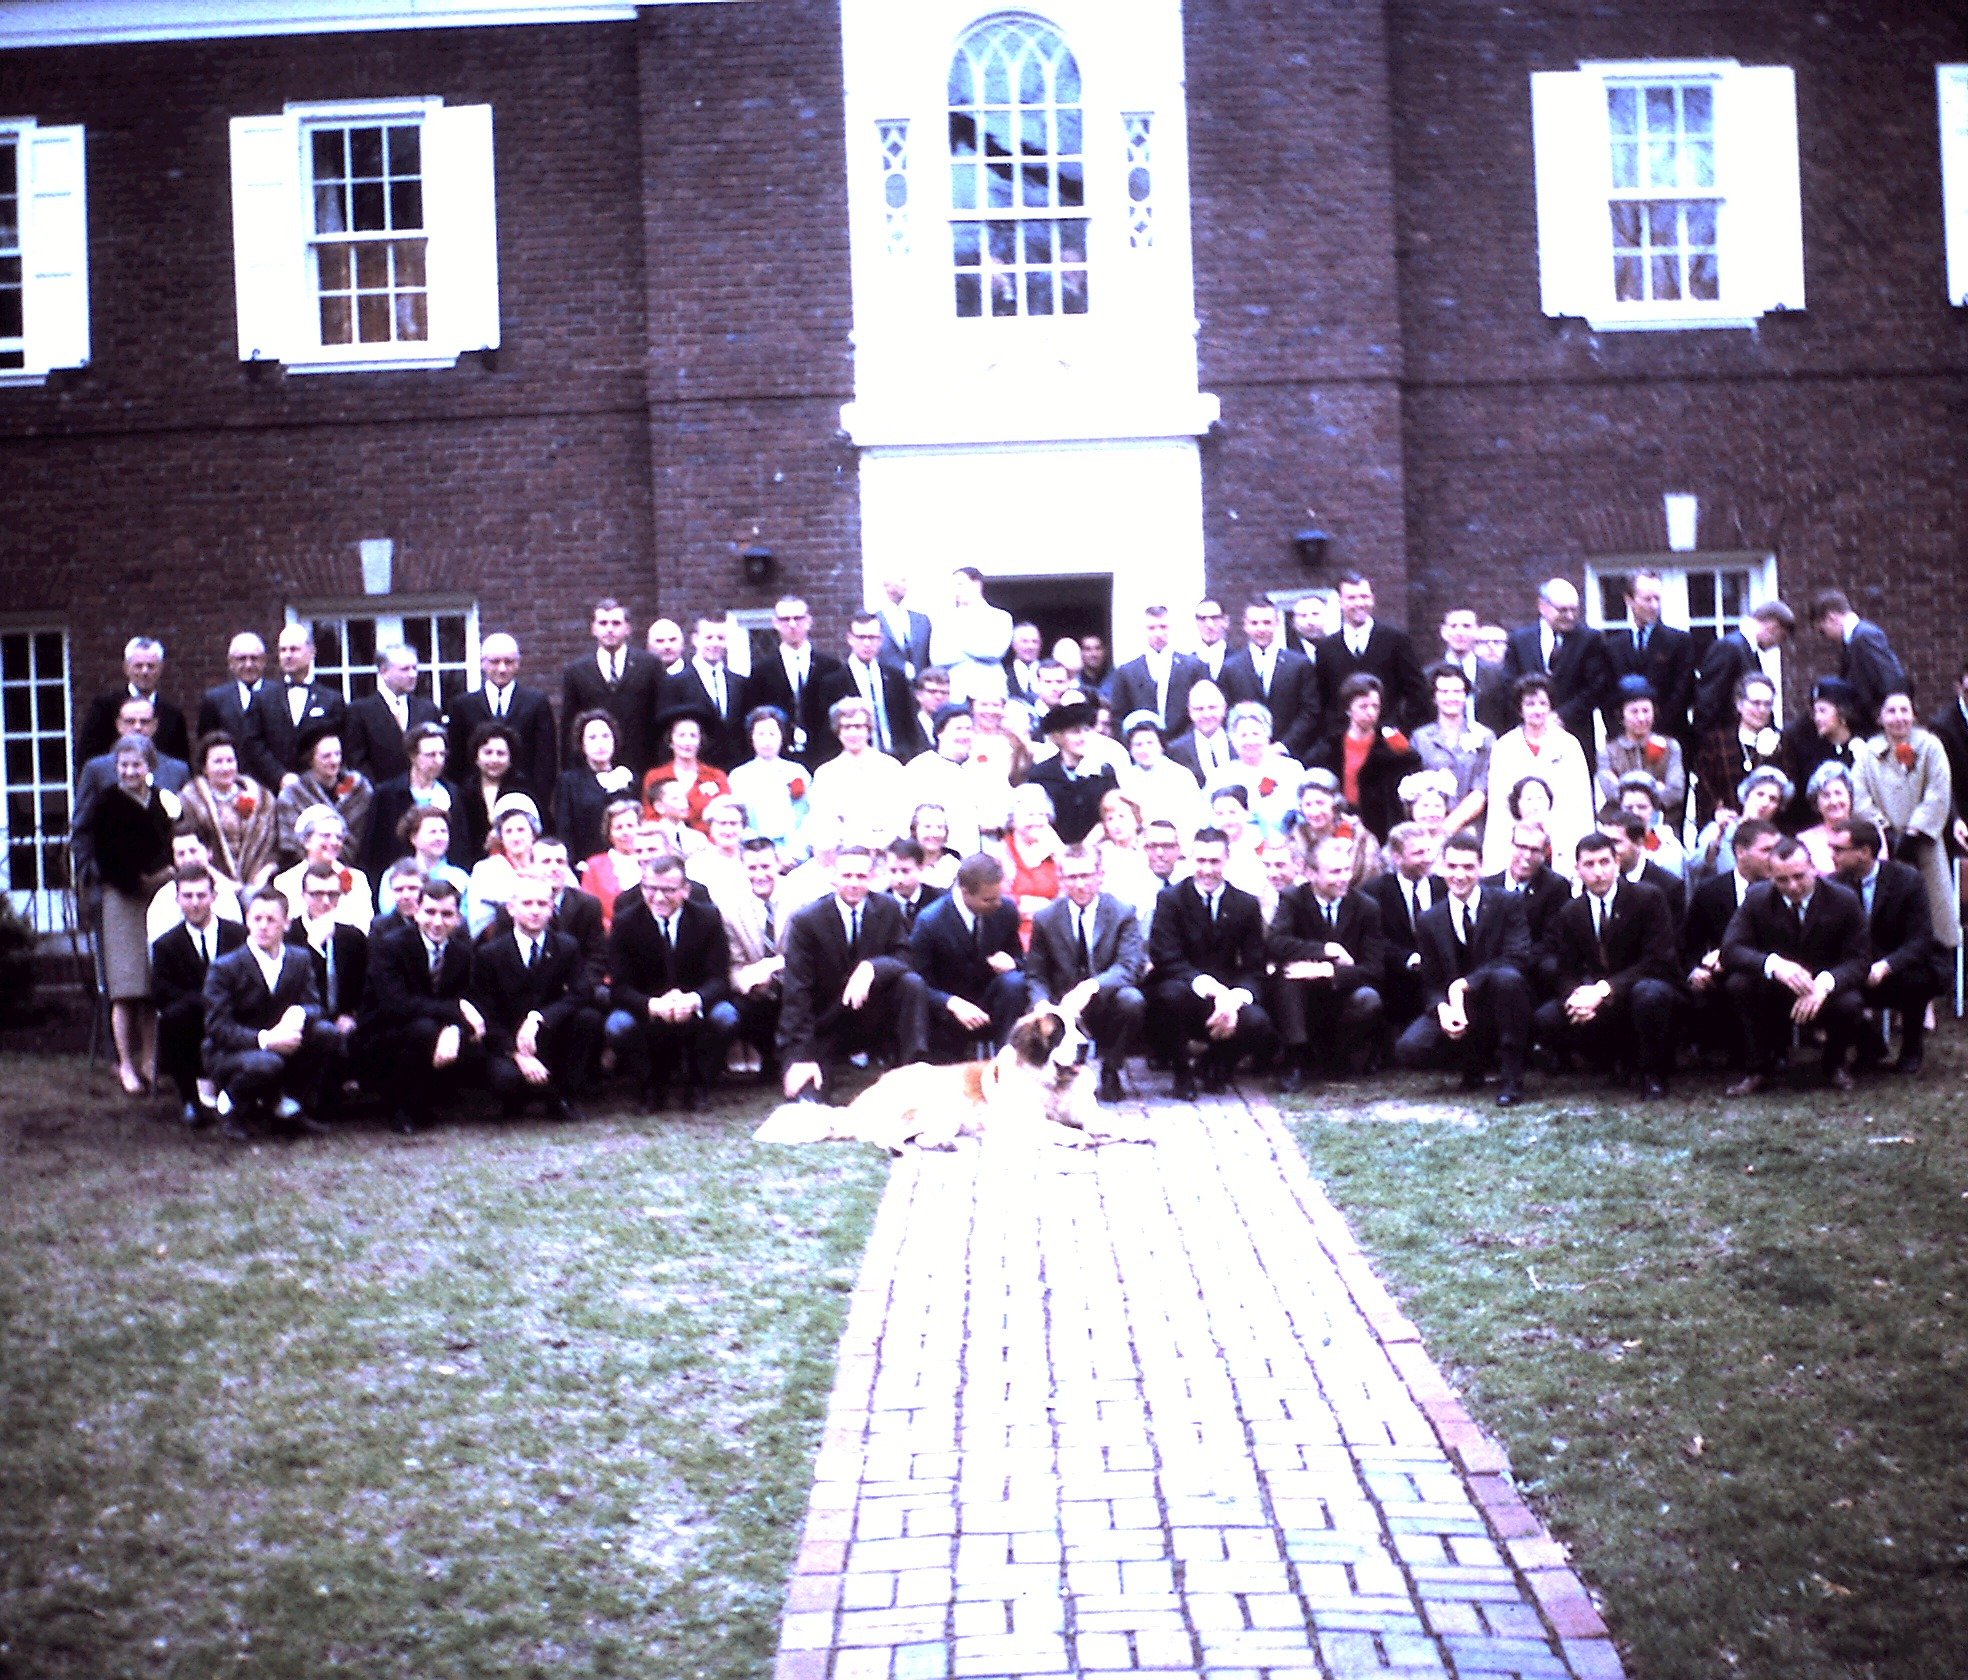 In front of the chapter house on Mother's Day, 1964